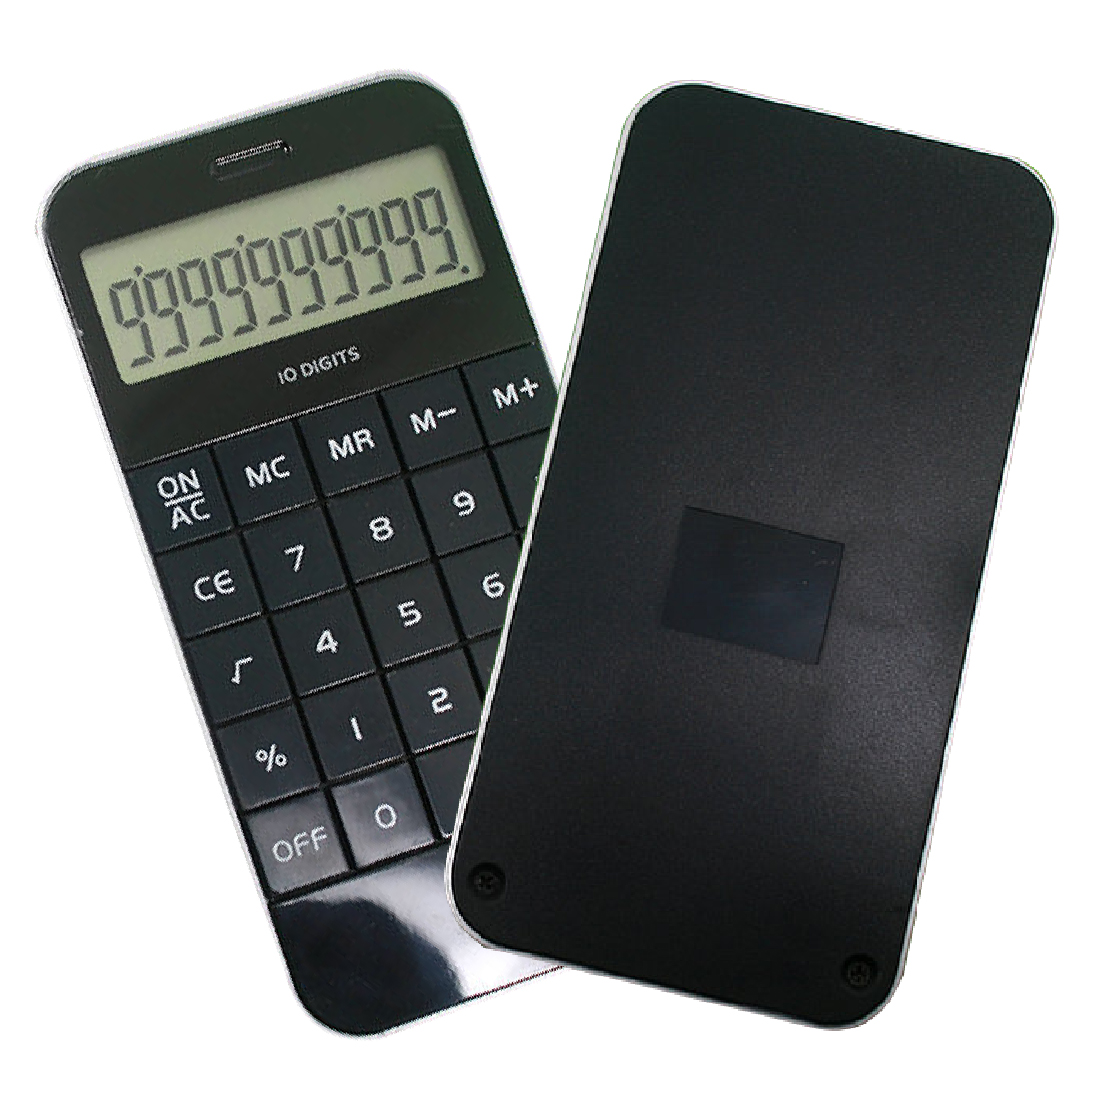 NOYOKERE Portable Home Calculator Office worker School Calculator Portable Pocket Electronic Calculating Calculator etmakit office home calculator office worker school calculator portable pocket electronic calculating calculator newest